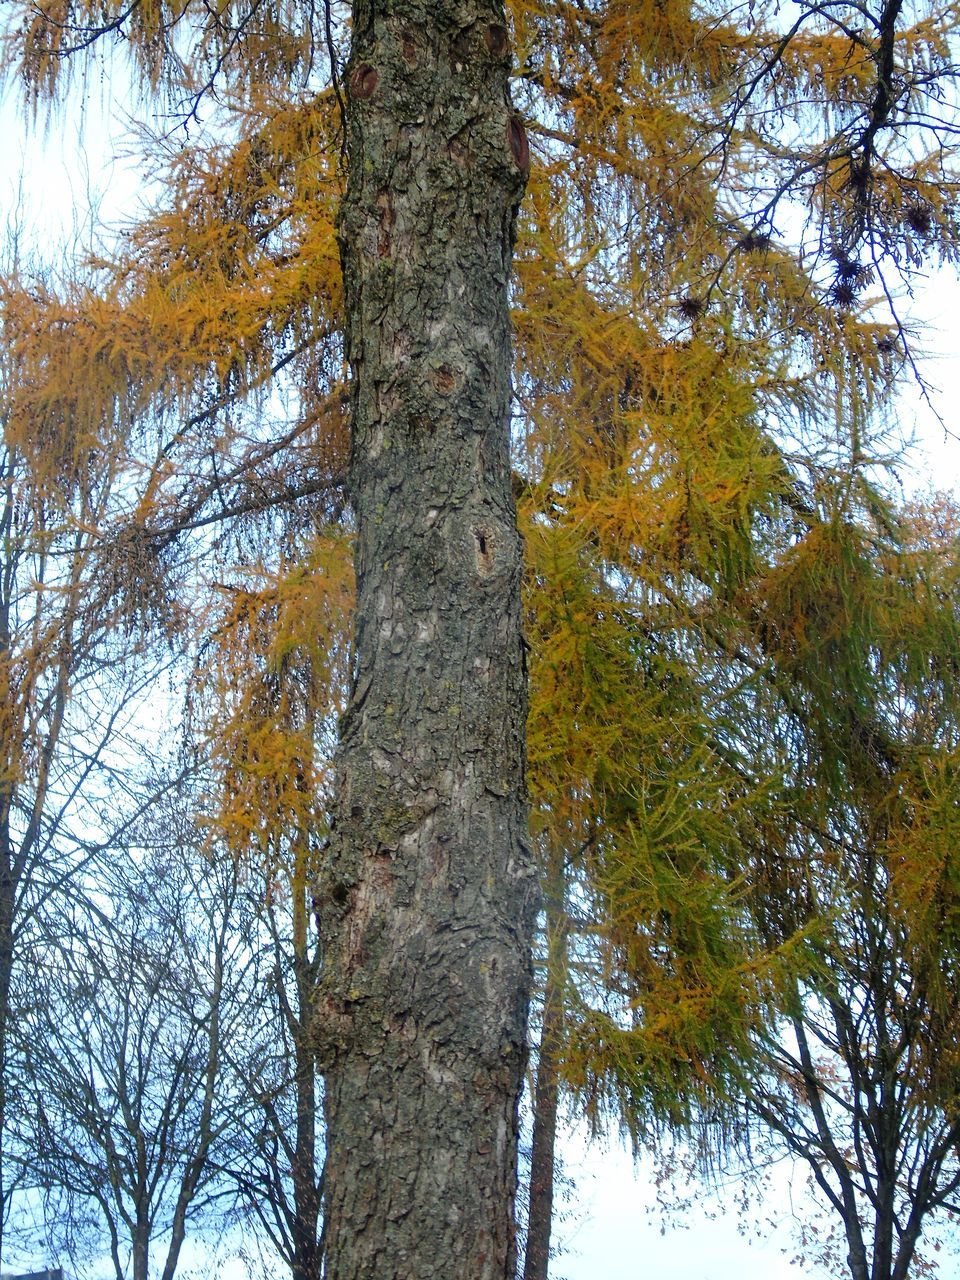 tree, tree trunk, nature, low angle view, forest, beauty in nature, day, growth, branch, outdoors, no people, autumn, scenics, tranquility, leaf, sky